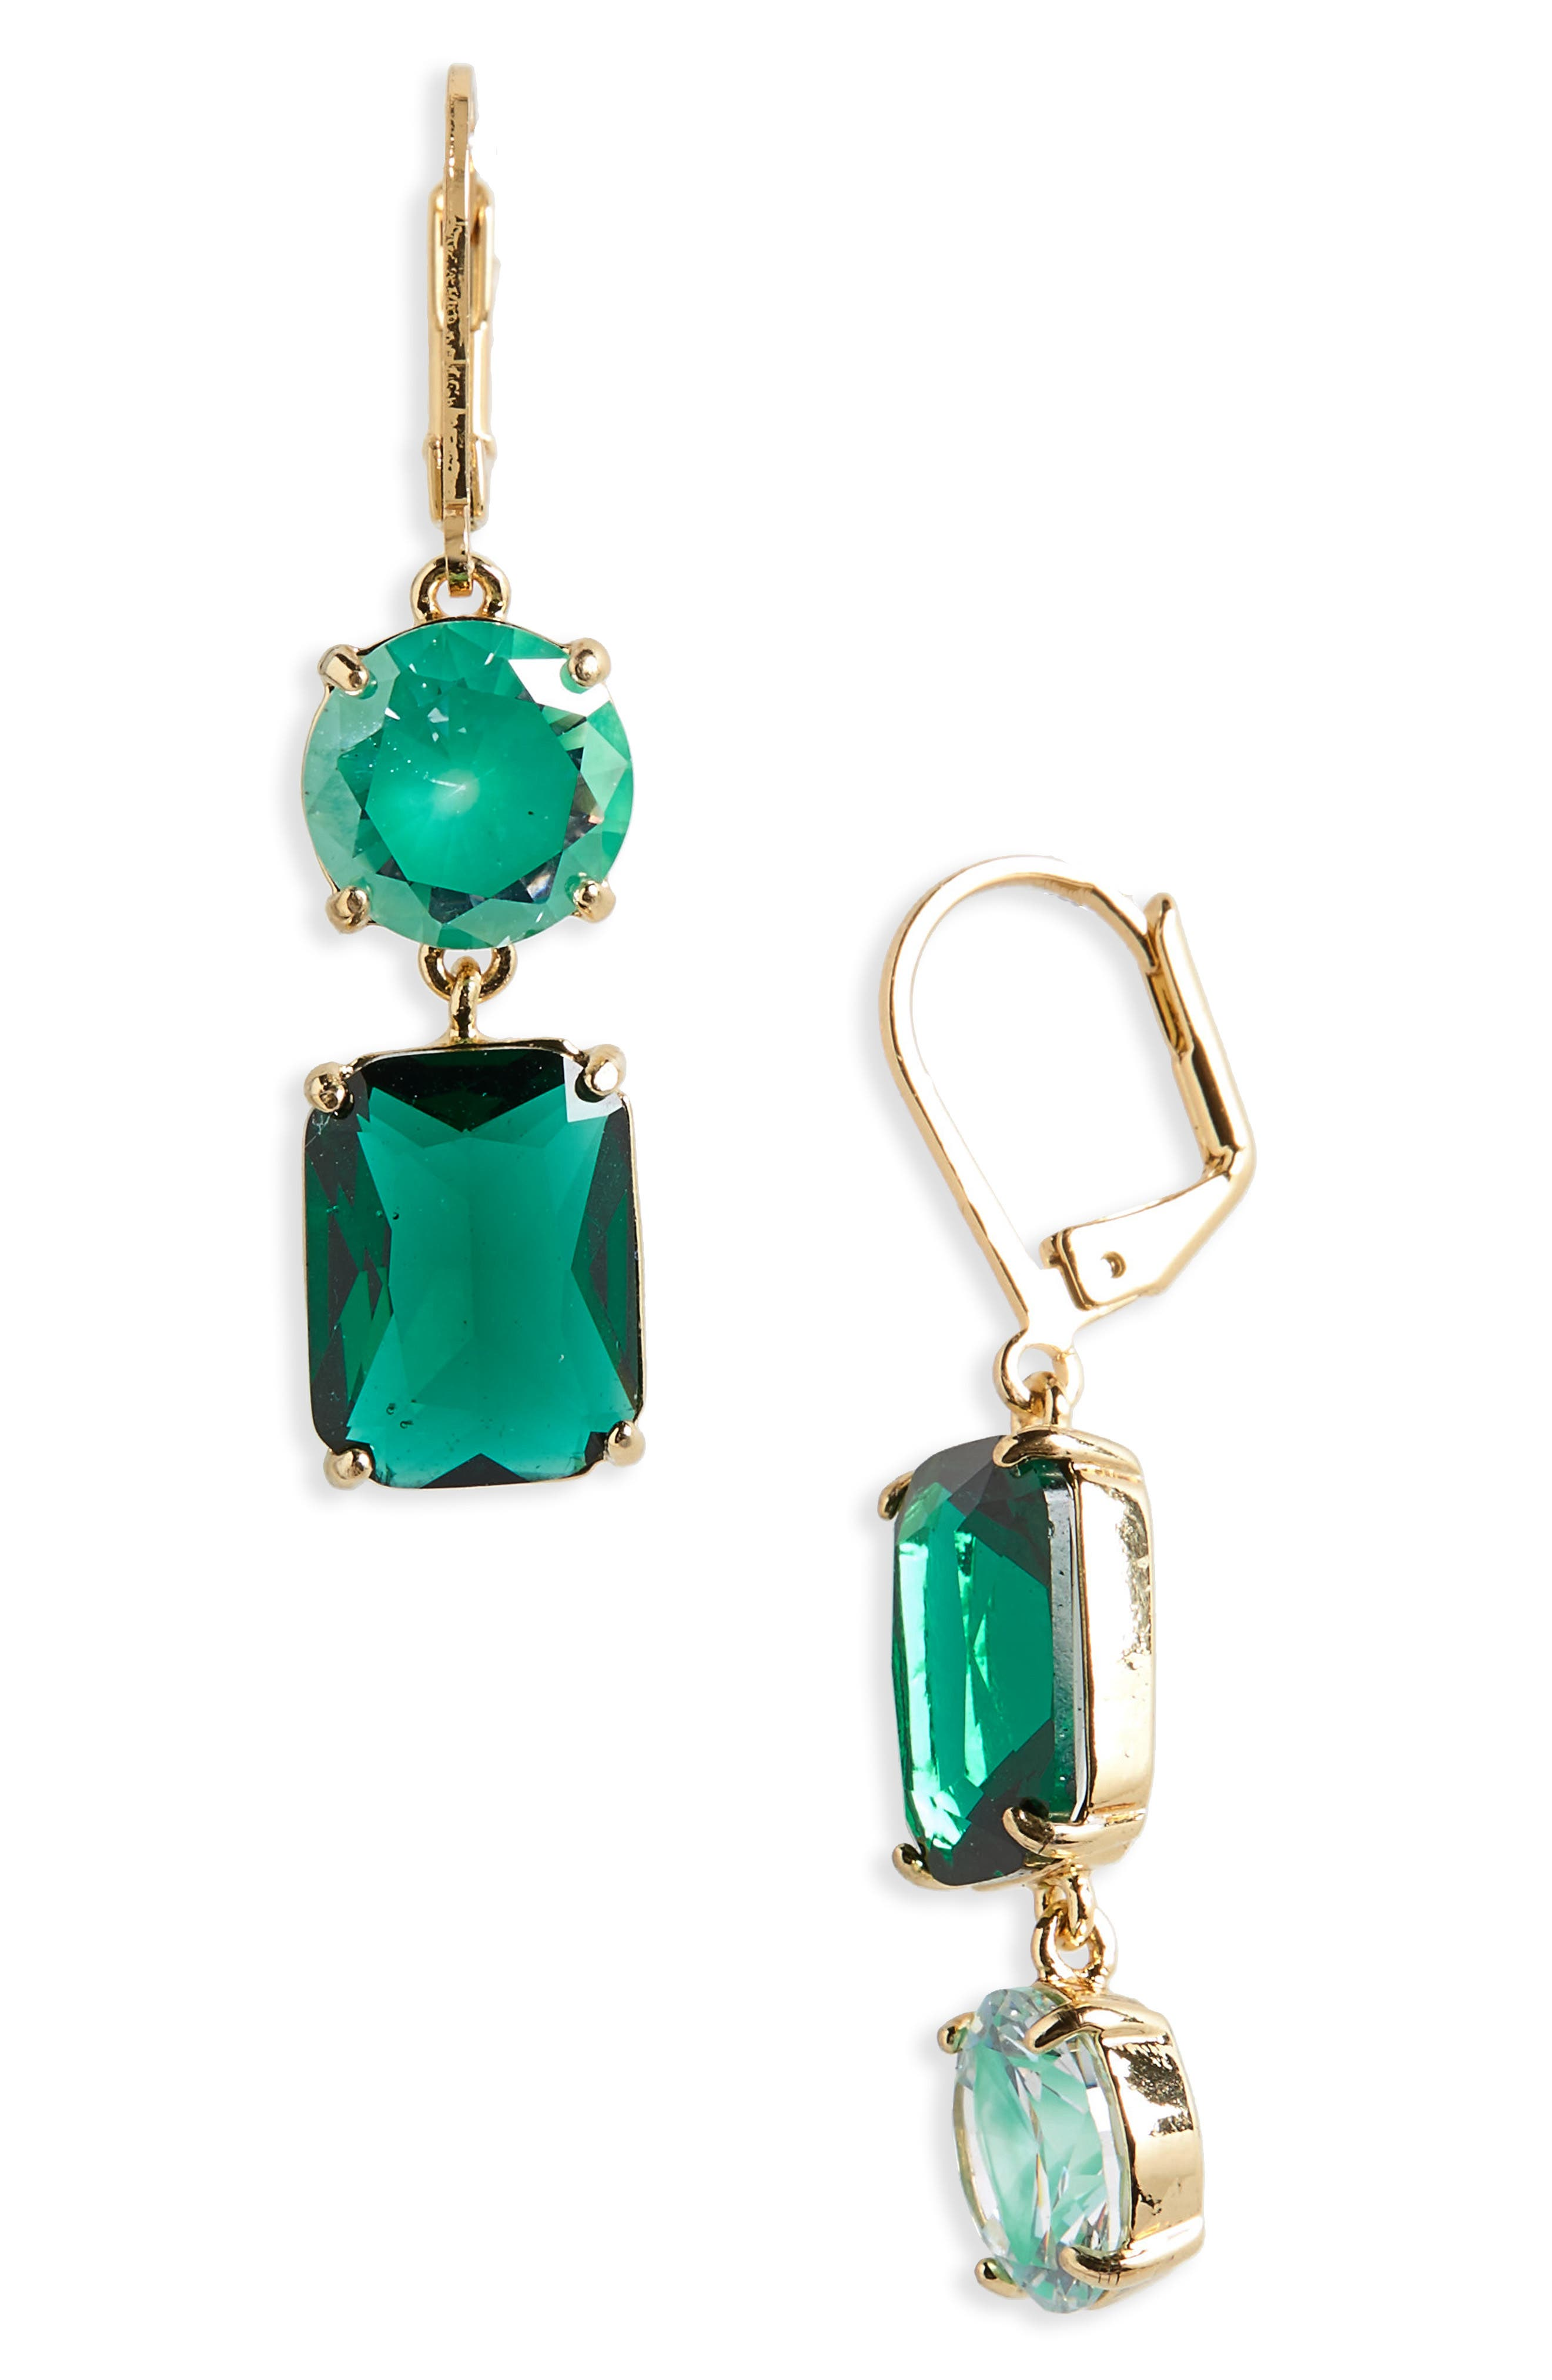 KATE SPADE NEW YORK kate spade shine on mismatched drop earrings